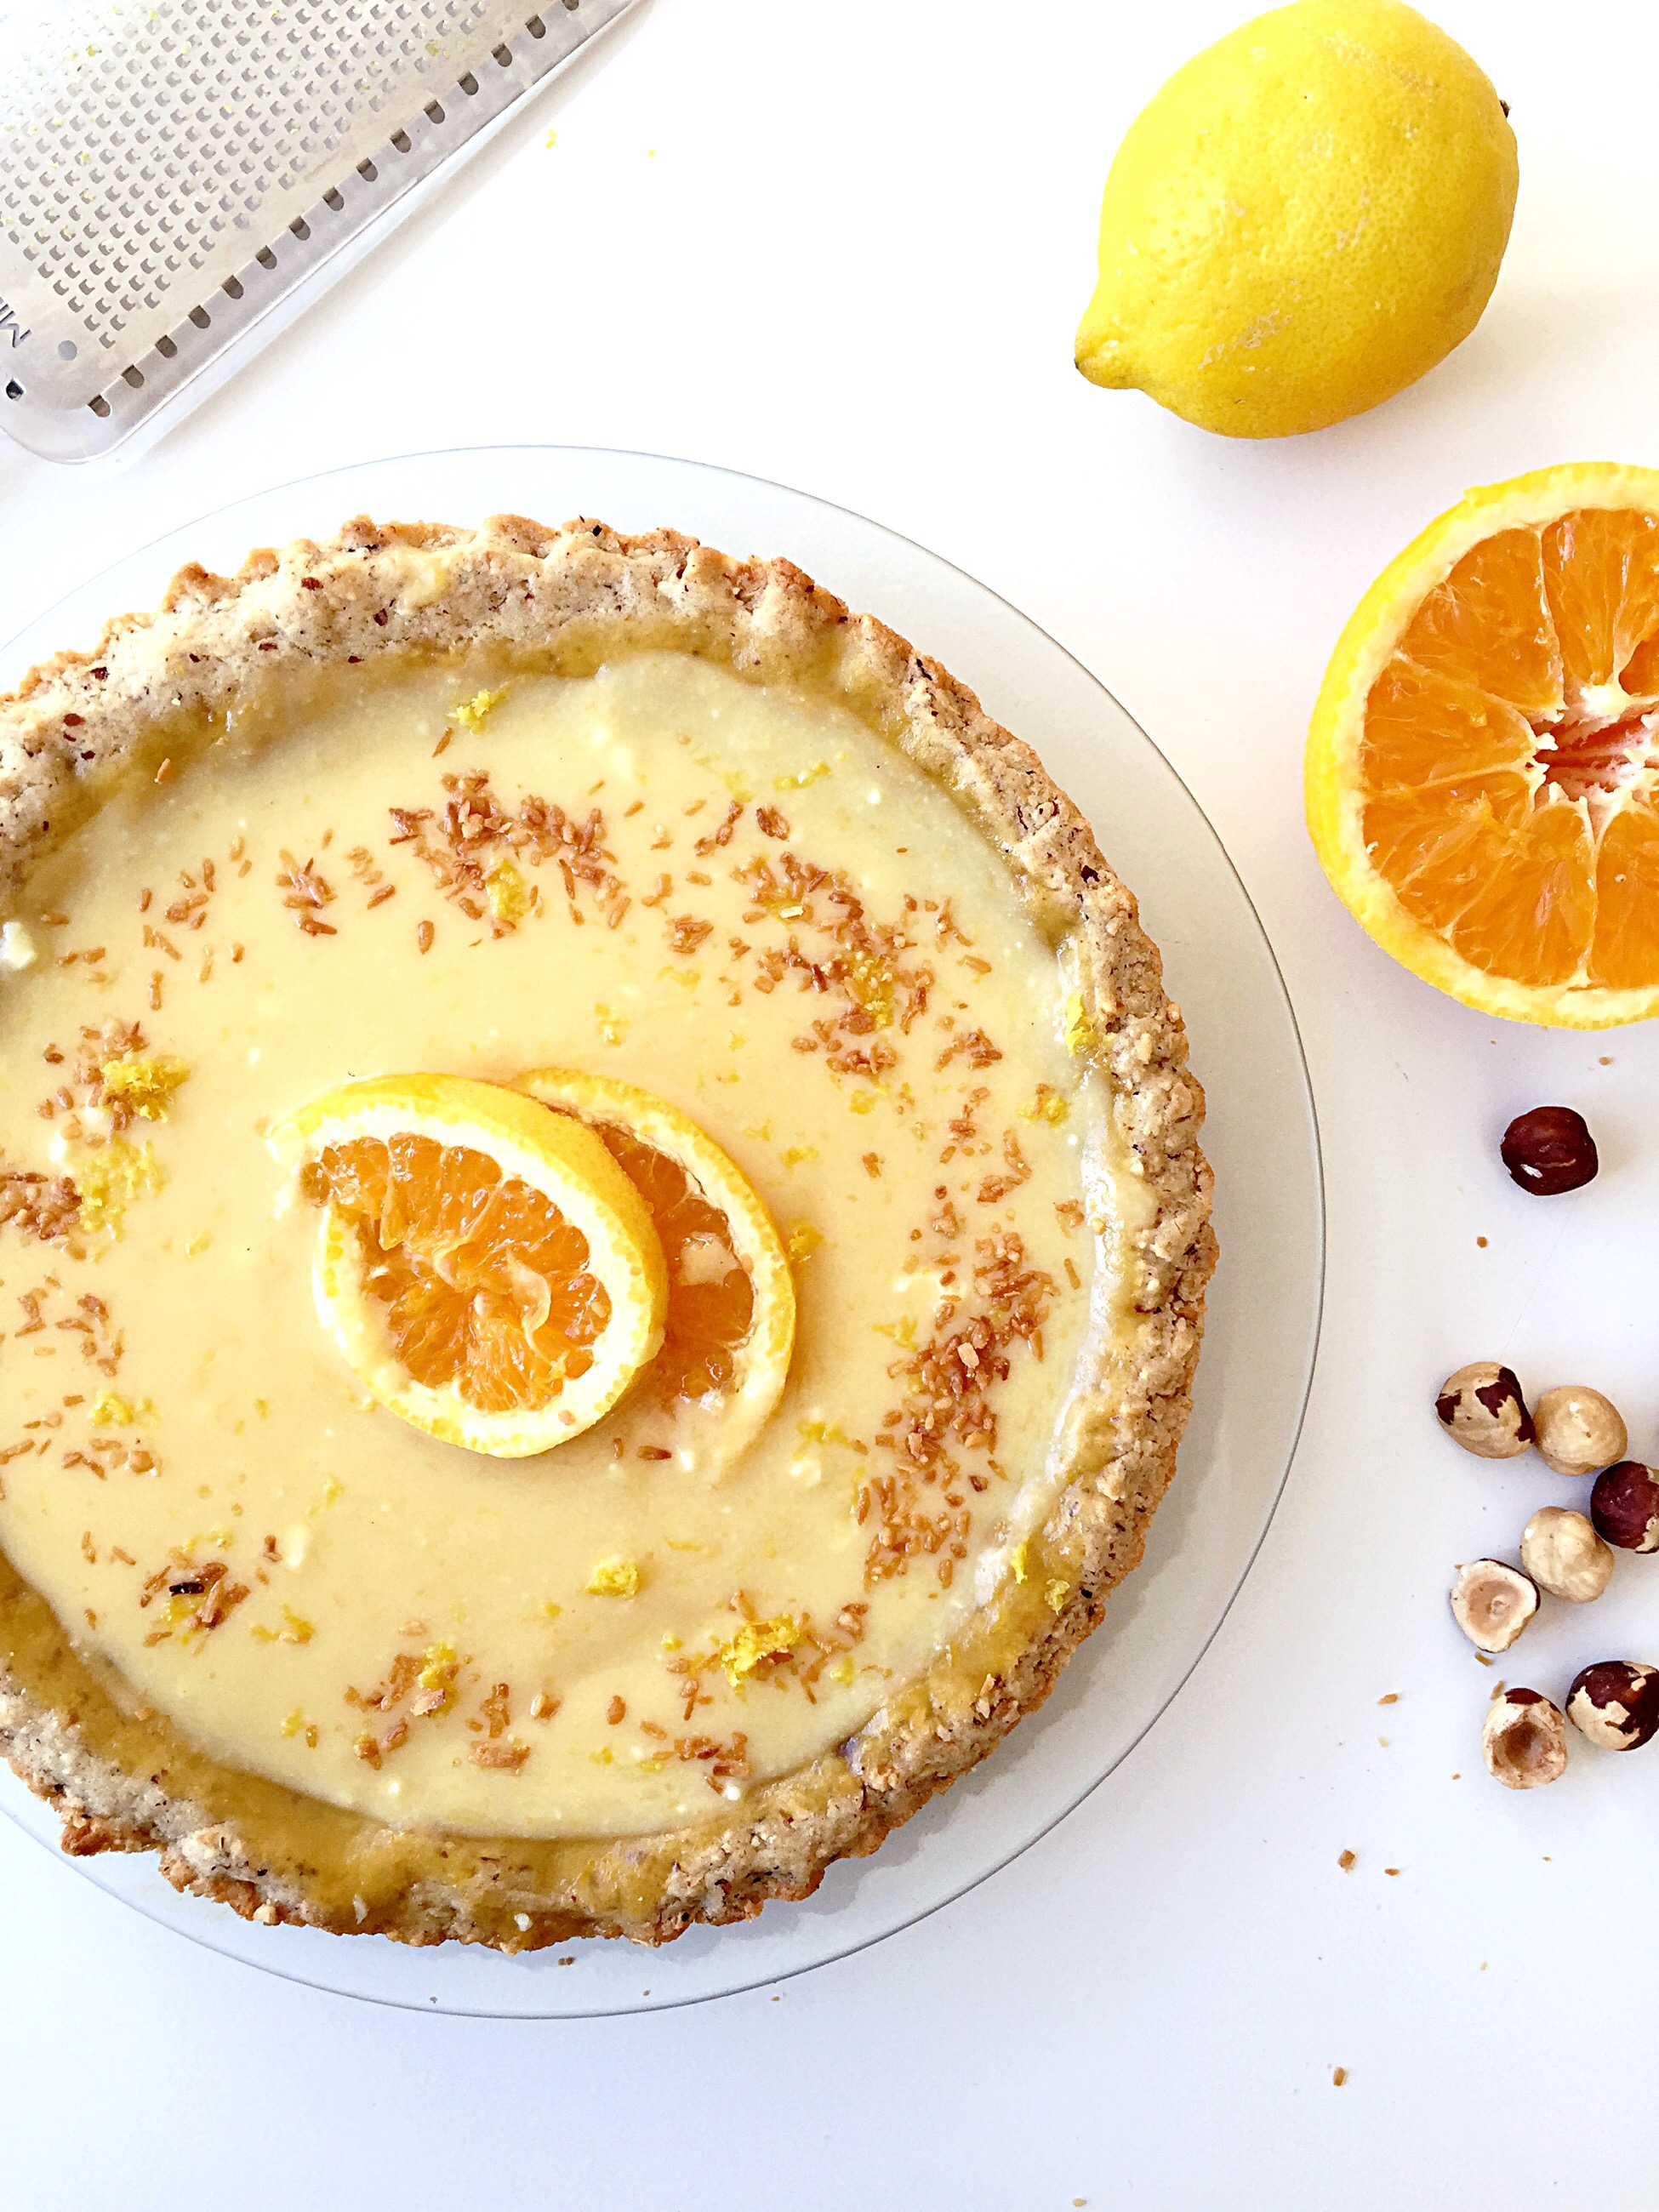 Lemon Hazelnut Tart Recipes — Dishmaps